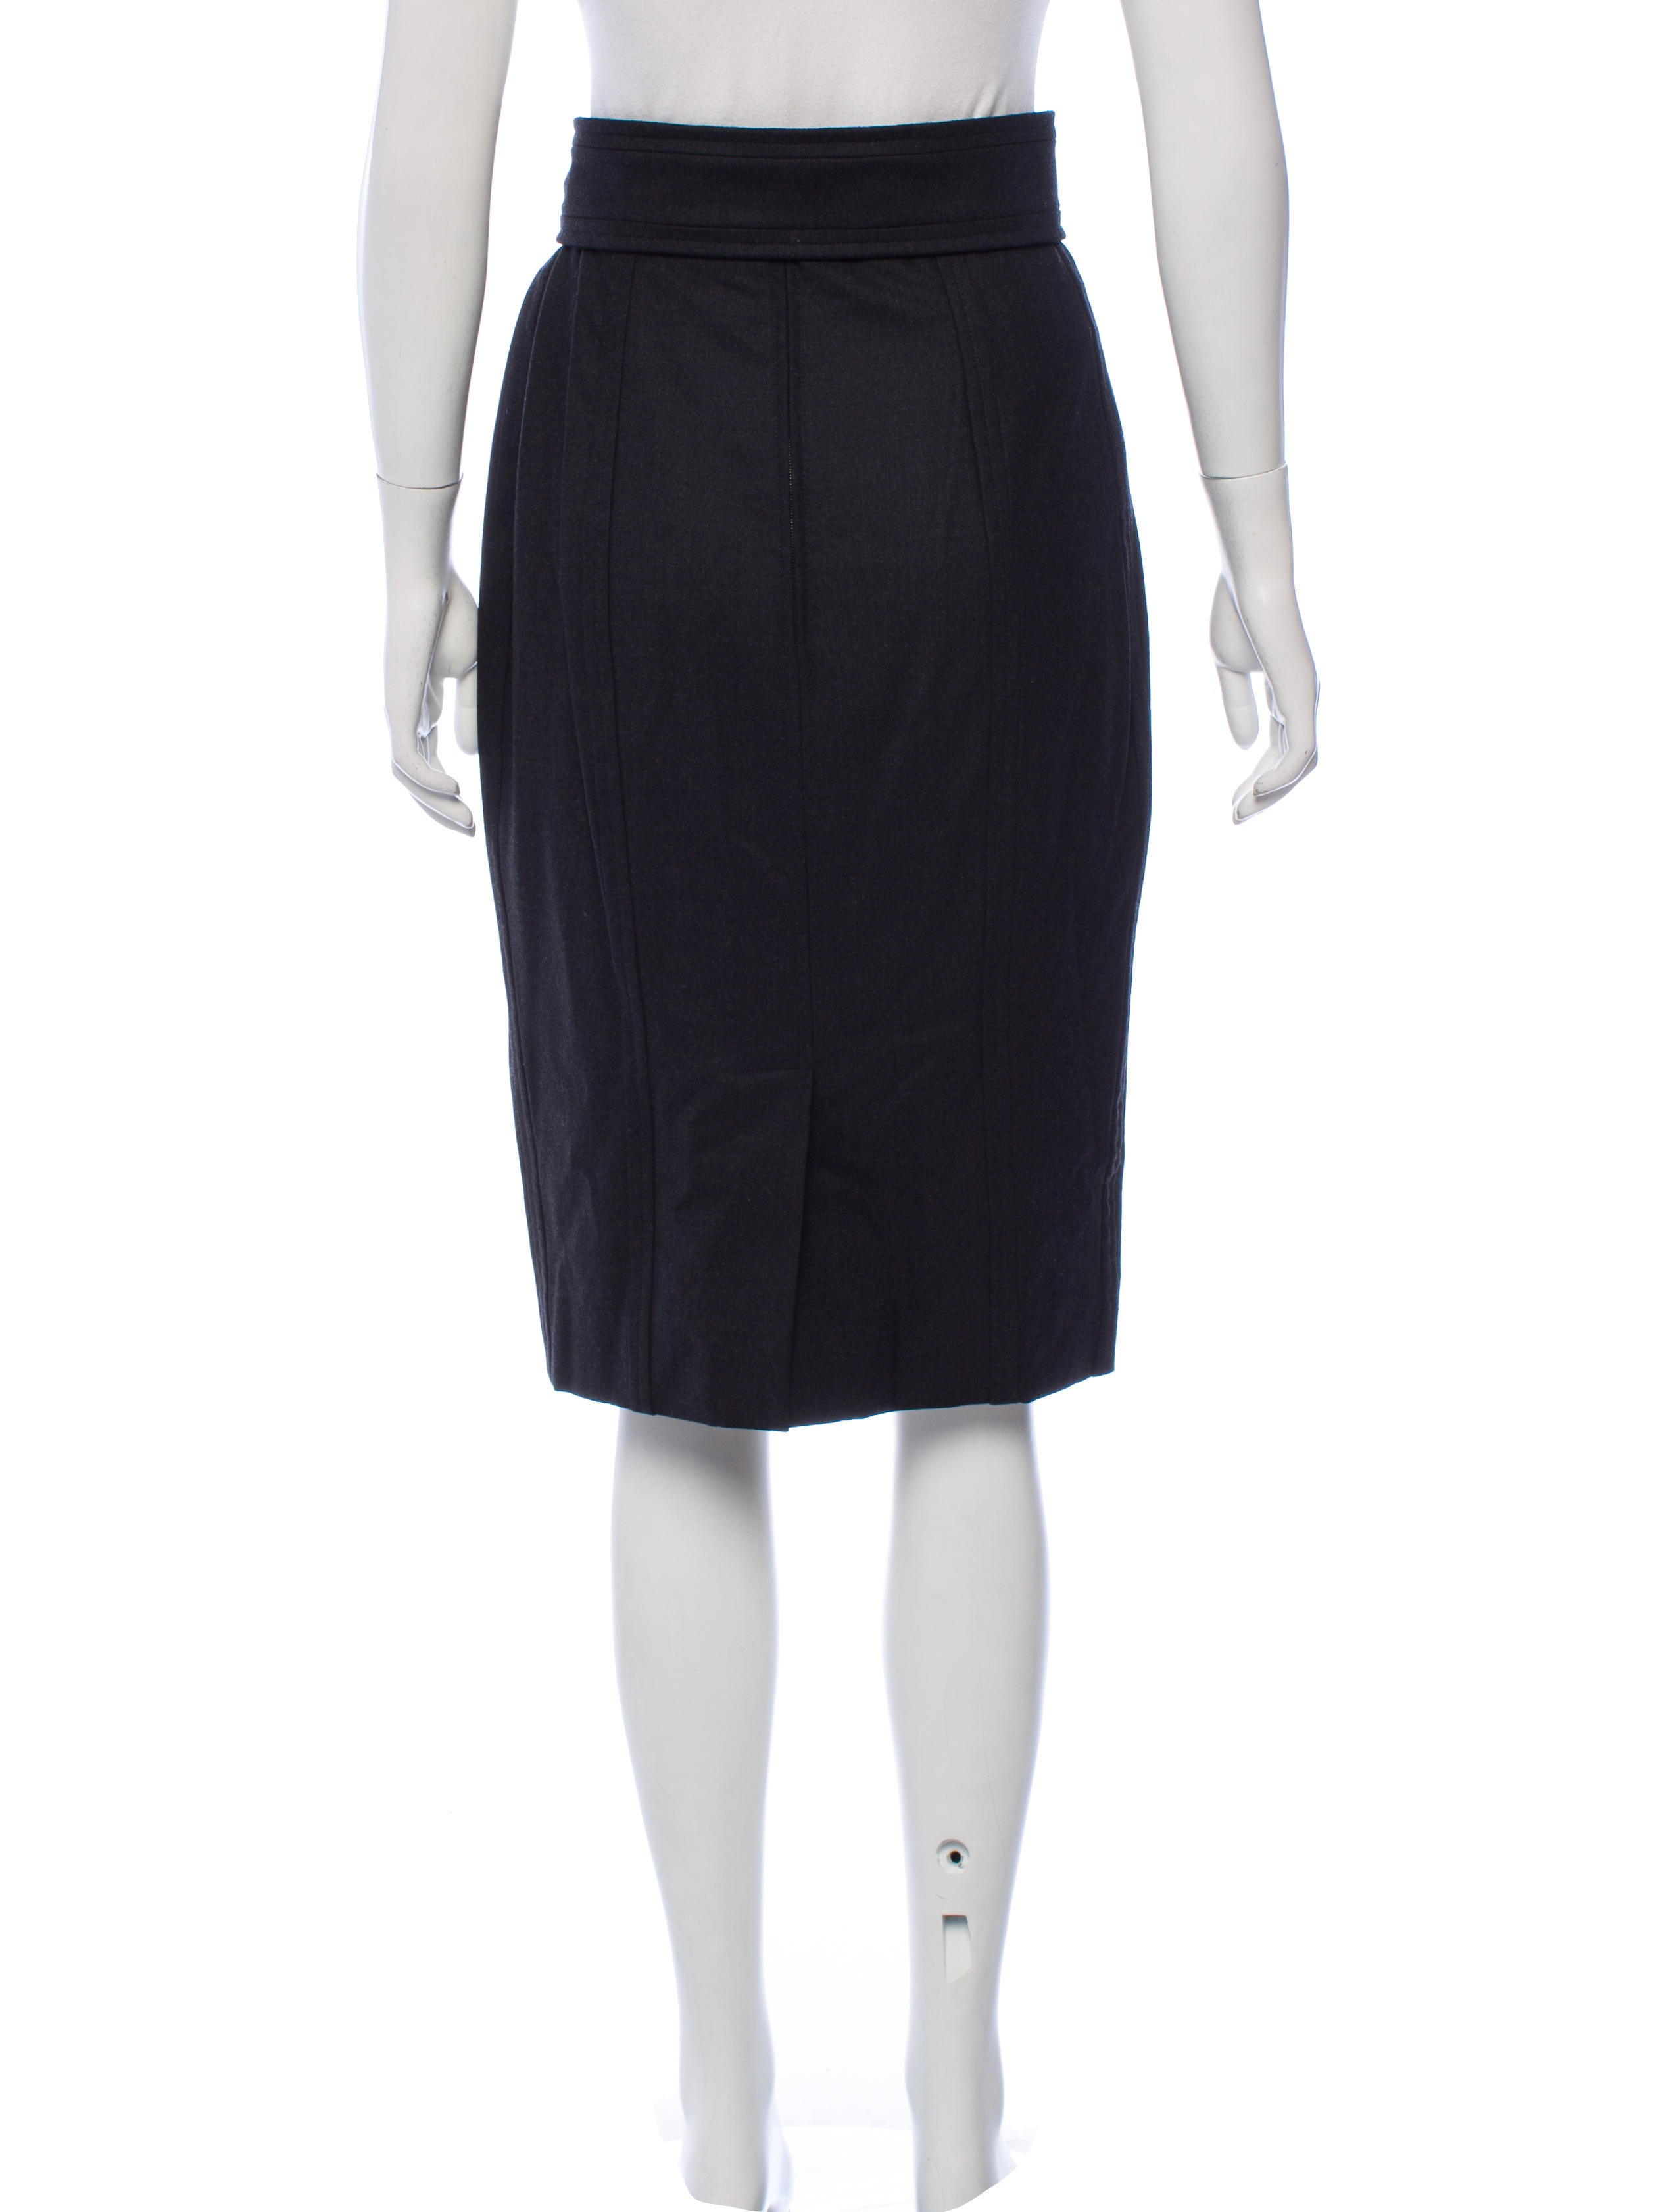 Yves saint laurent belted wool pencil skirt w tags for 66125 3